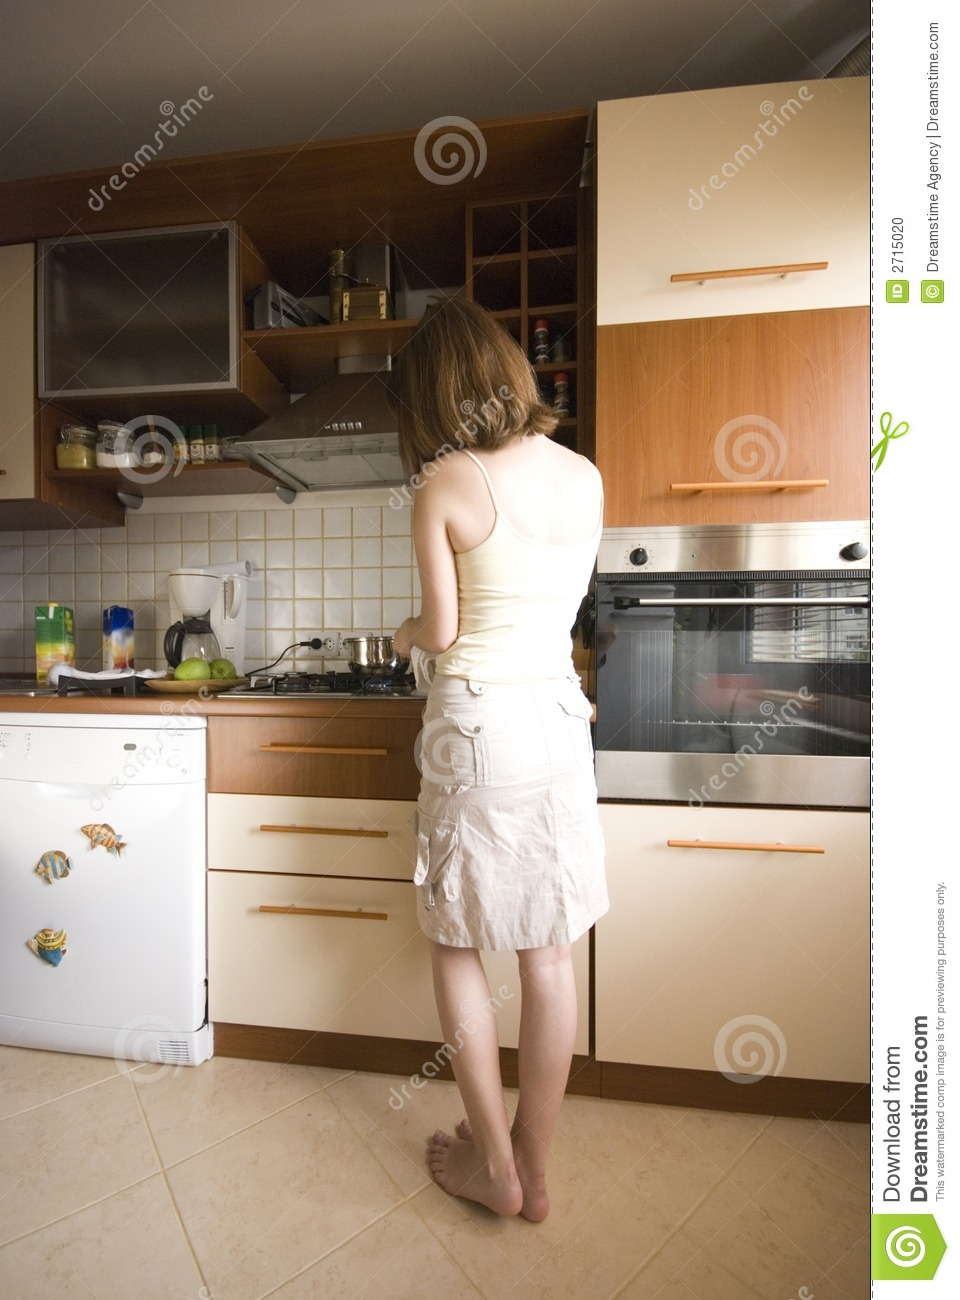 Girl in the kitchen stock photo. Image of pretty, woman - 2715020